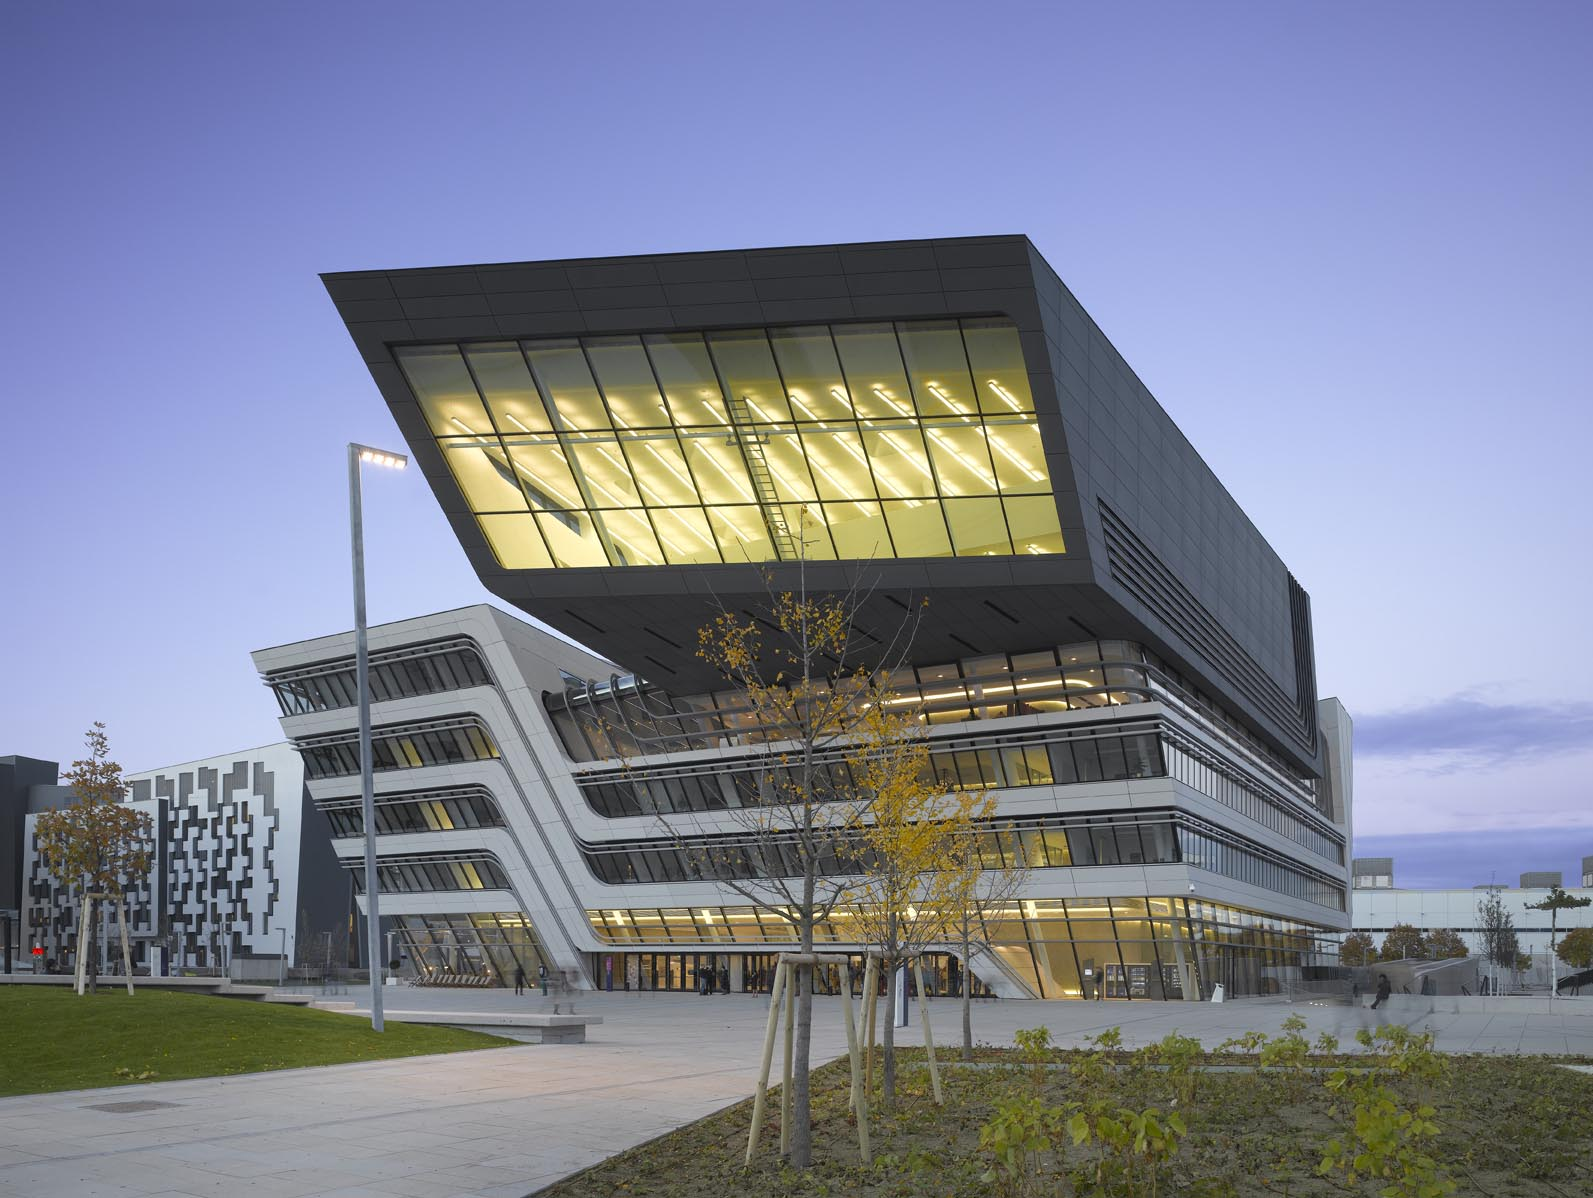 Library and Learning Centre | Zaha Hadid Architects, Rieder